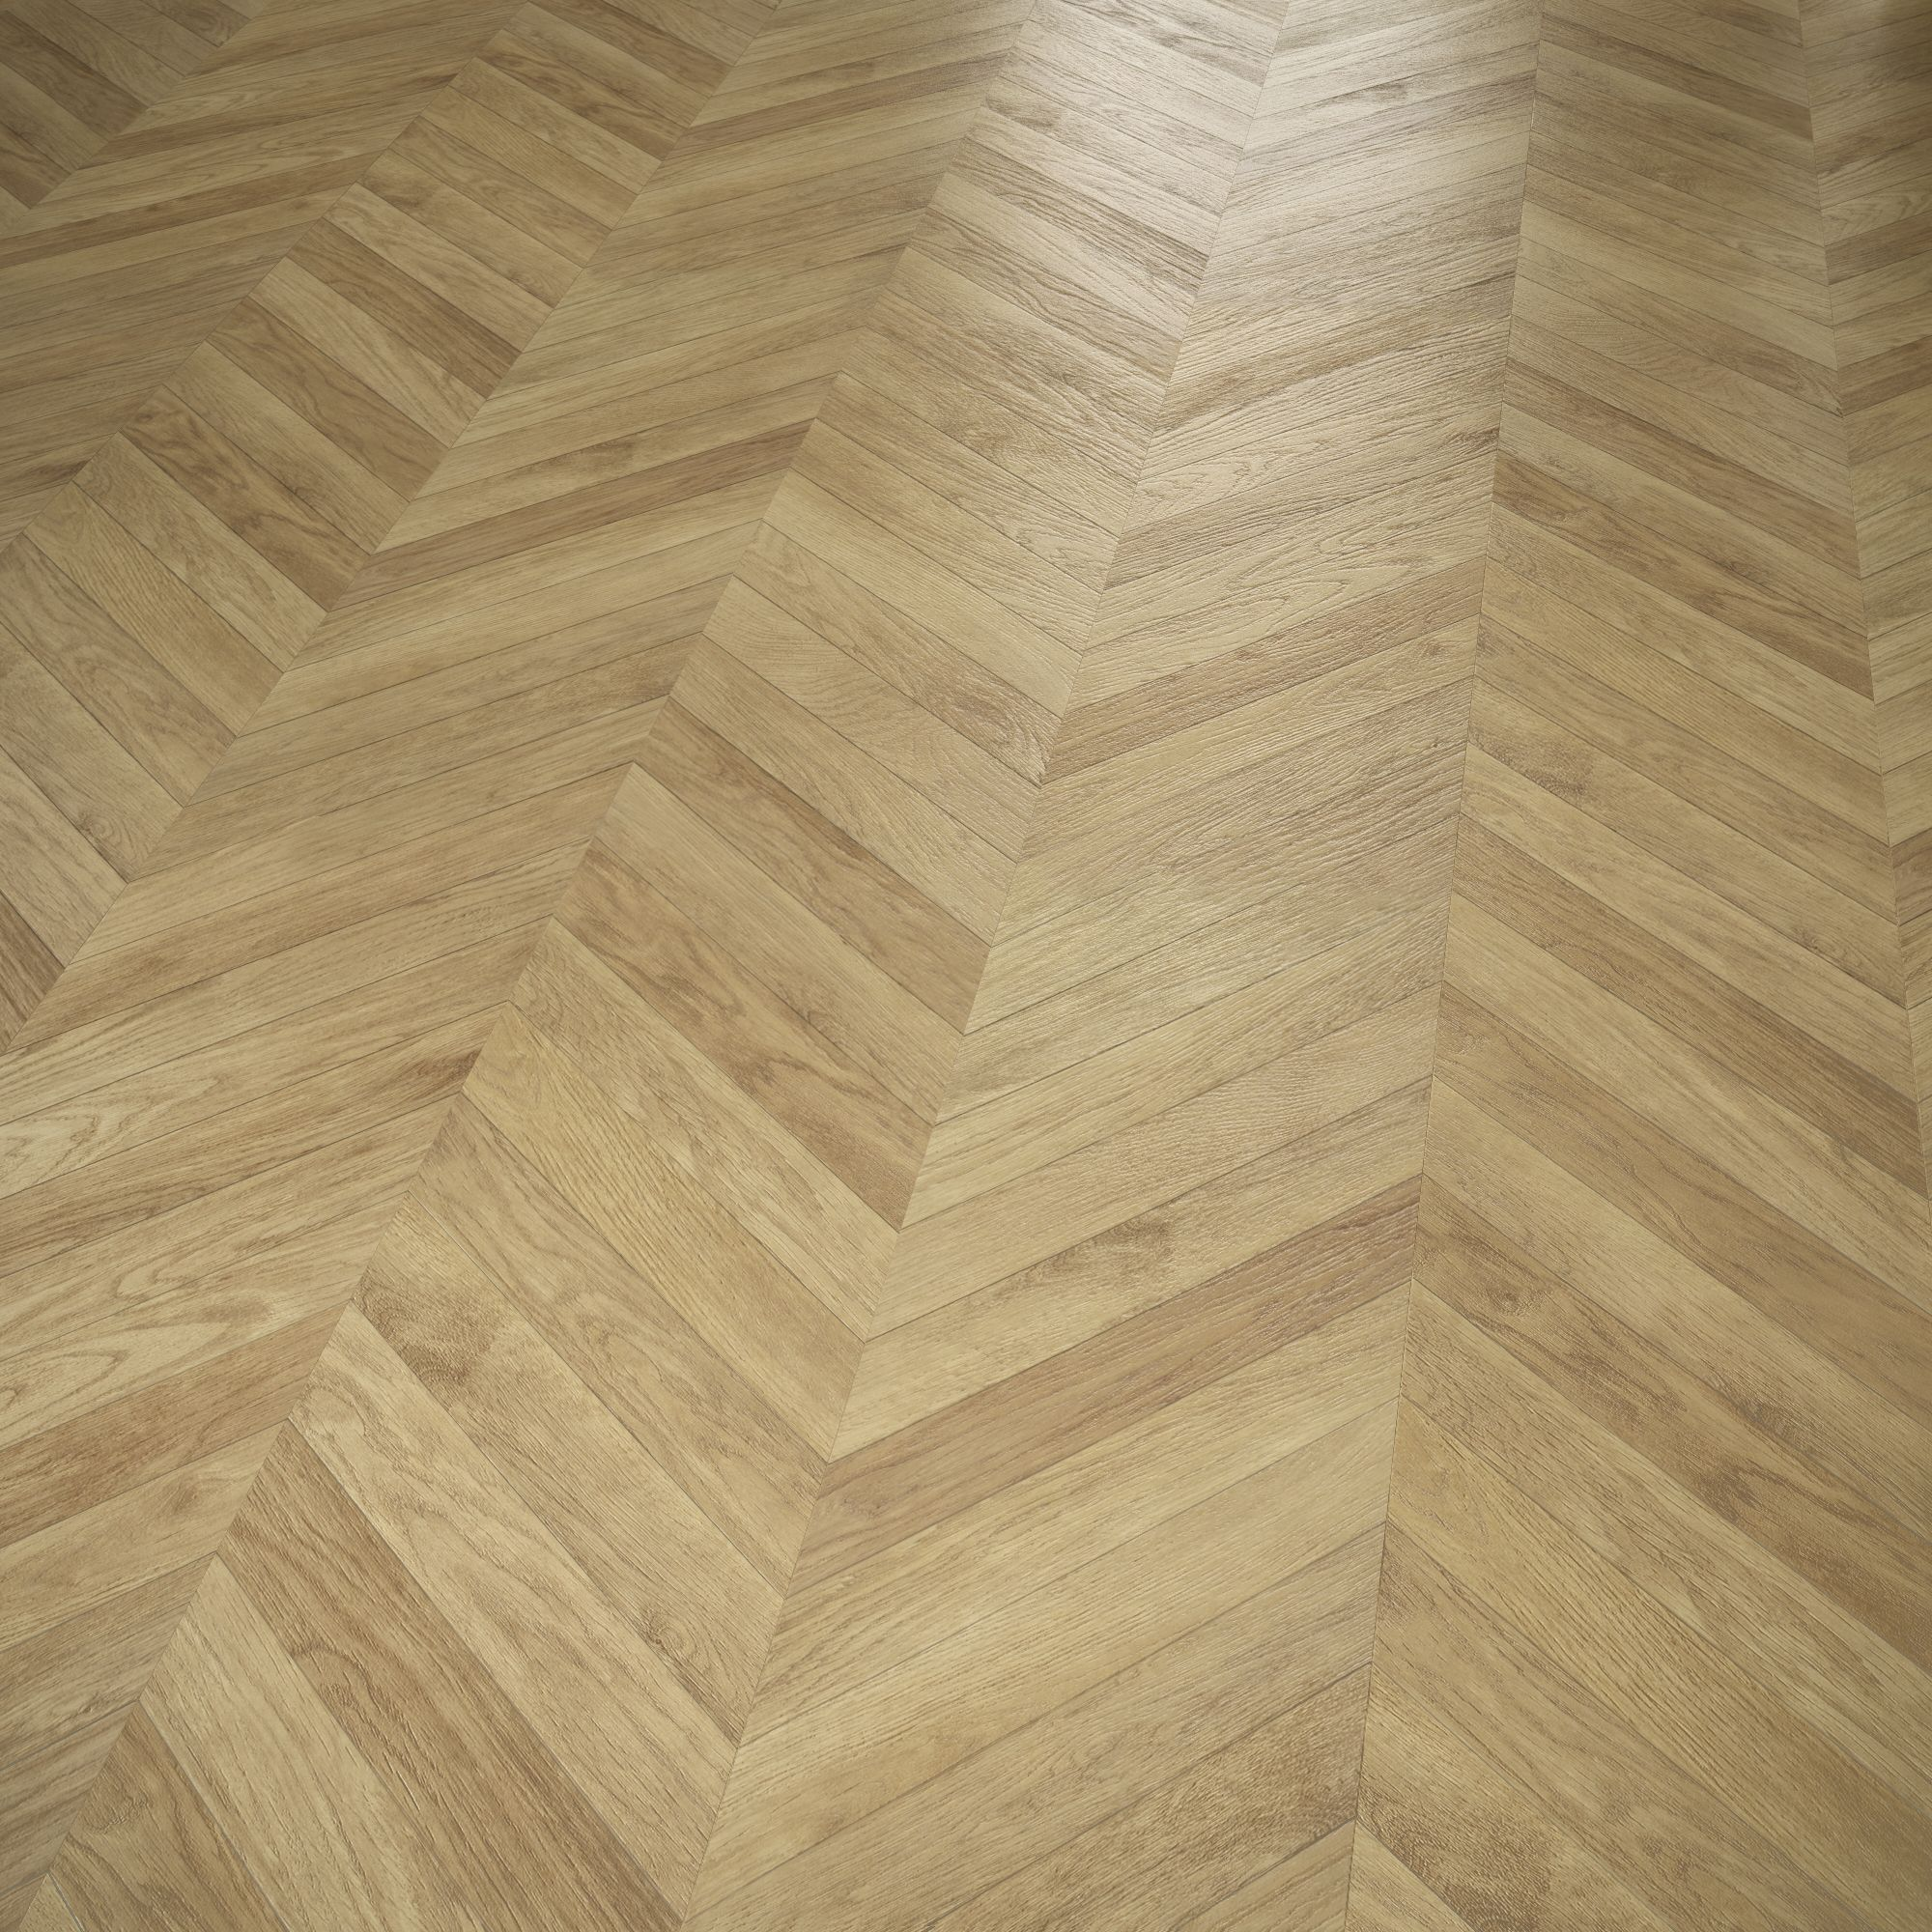 Alessano Herringbone Oak Effect Laminate Flooring 1 39 M² Pack